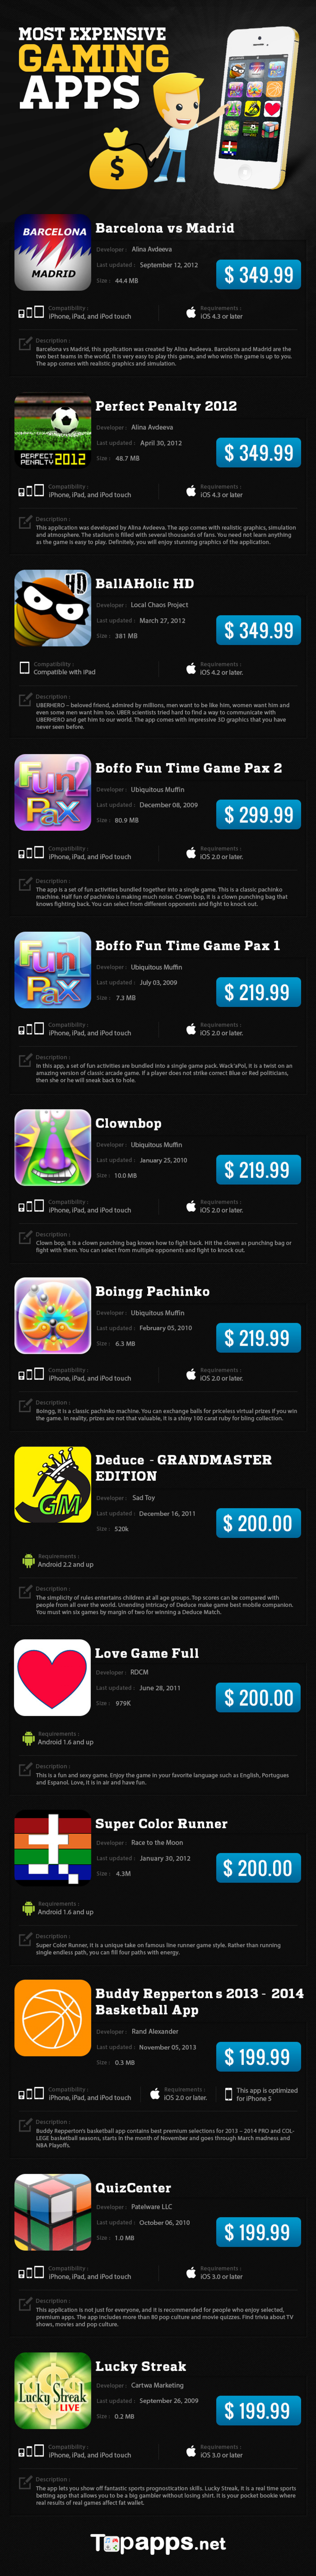 Most Expensive Gaming Apps Infographic